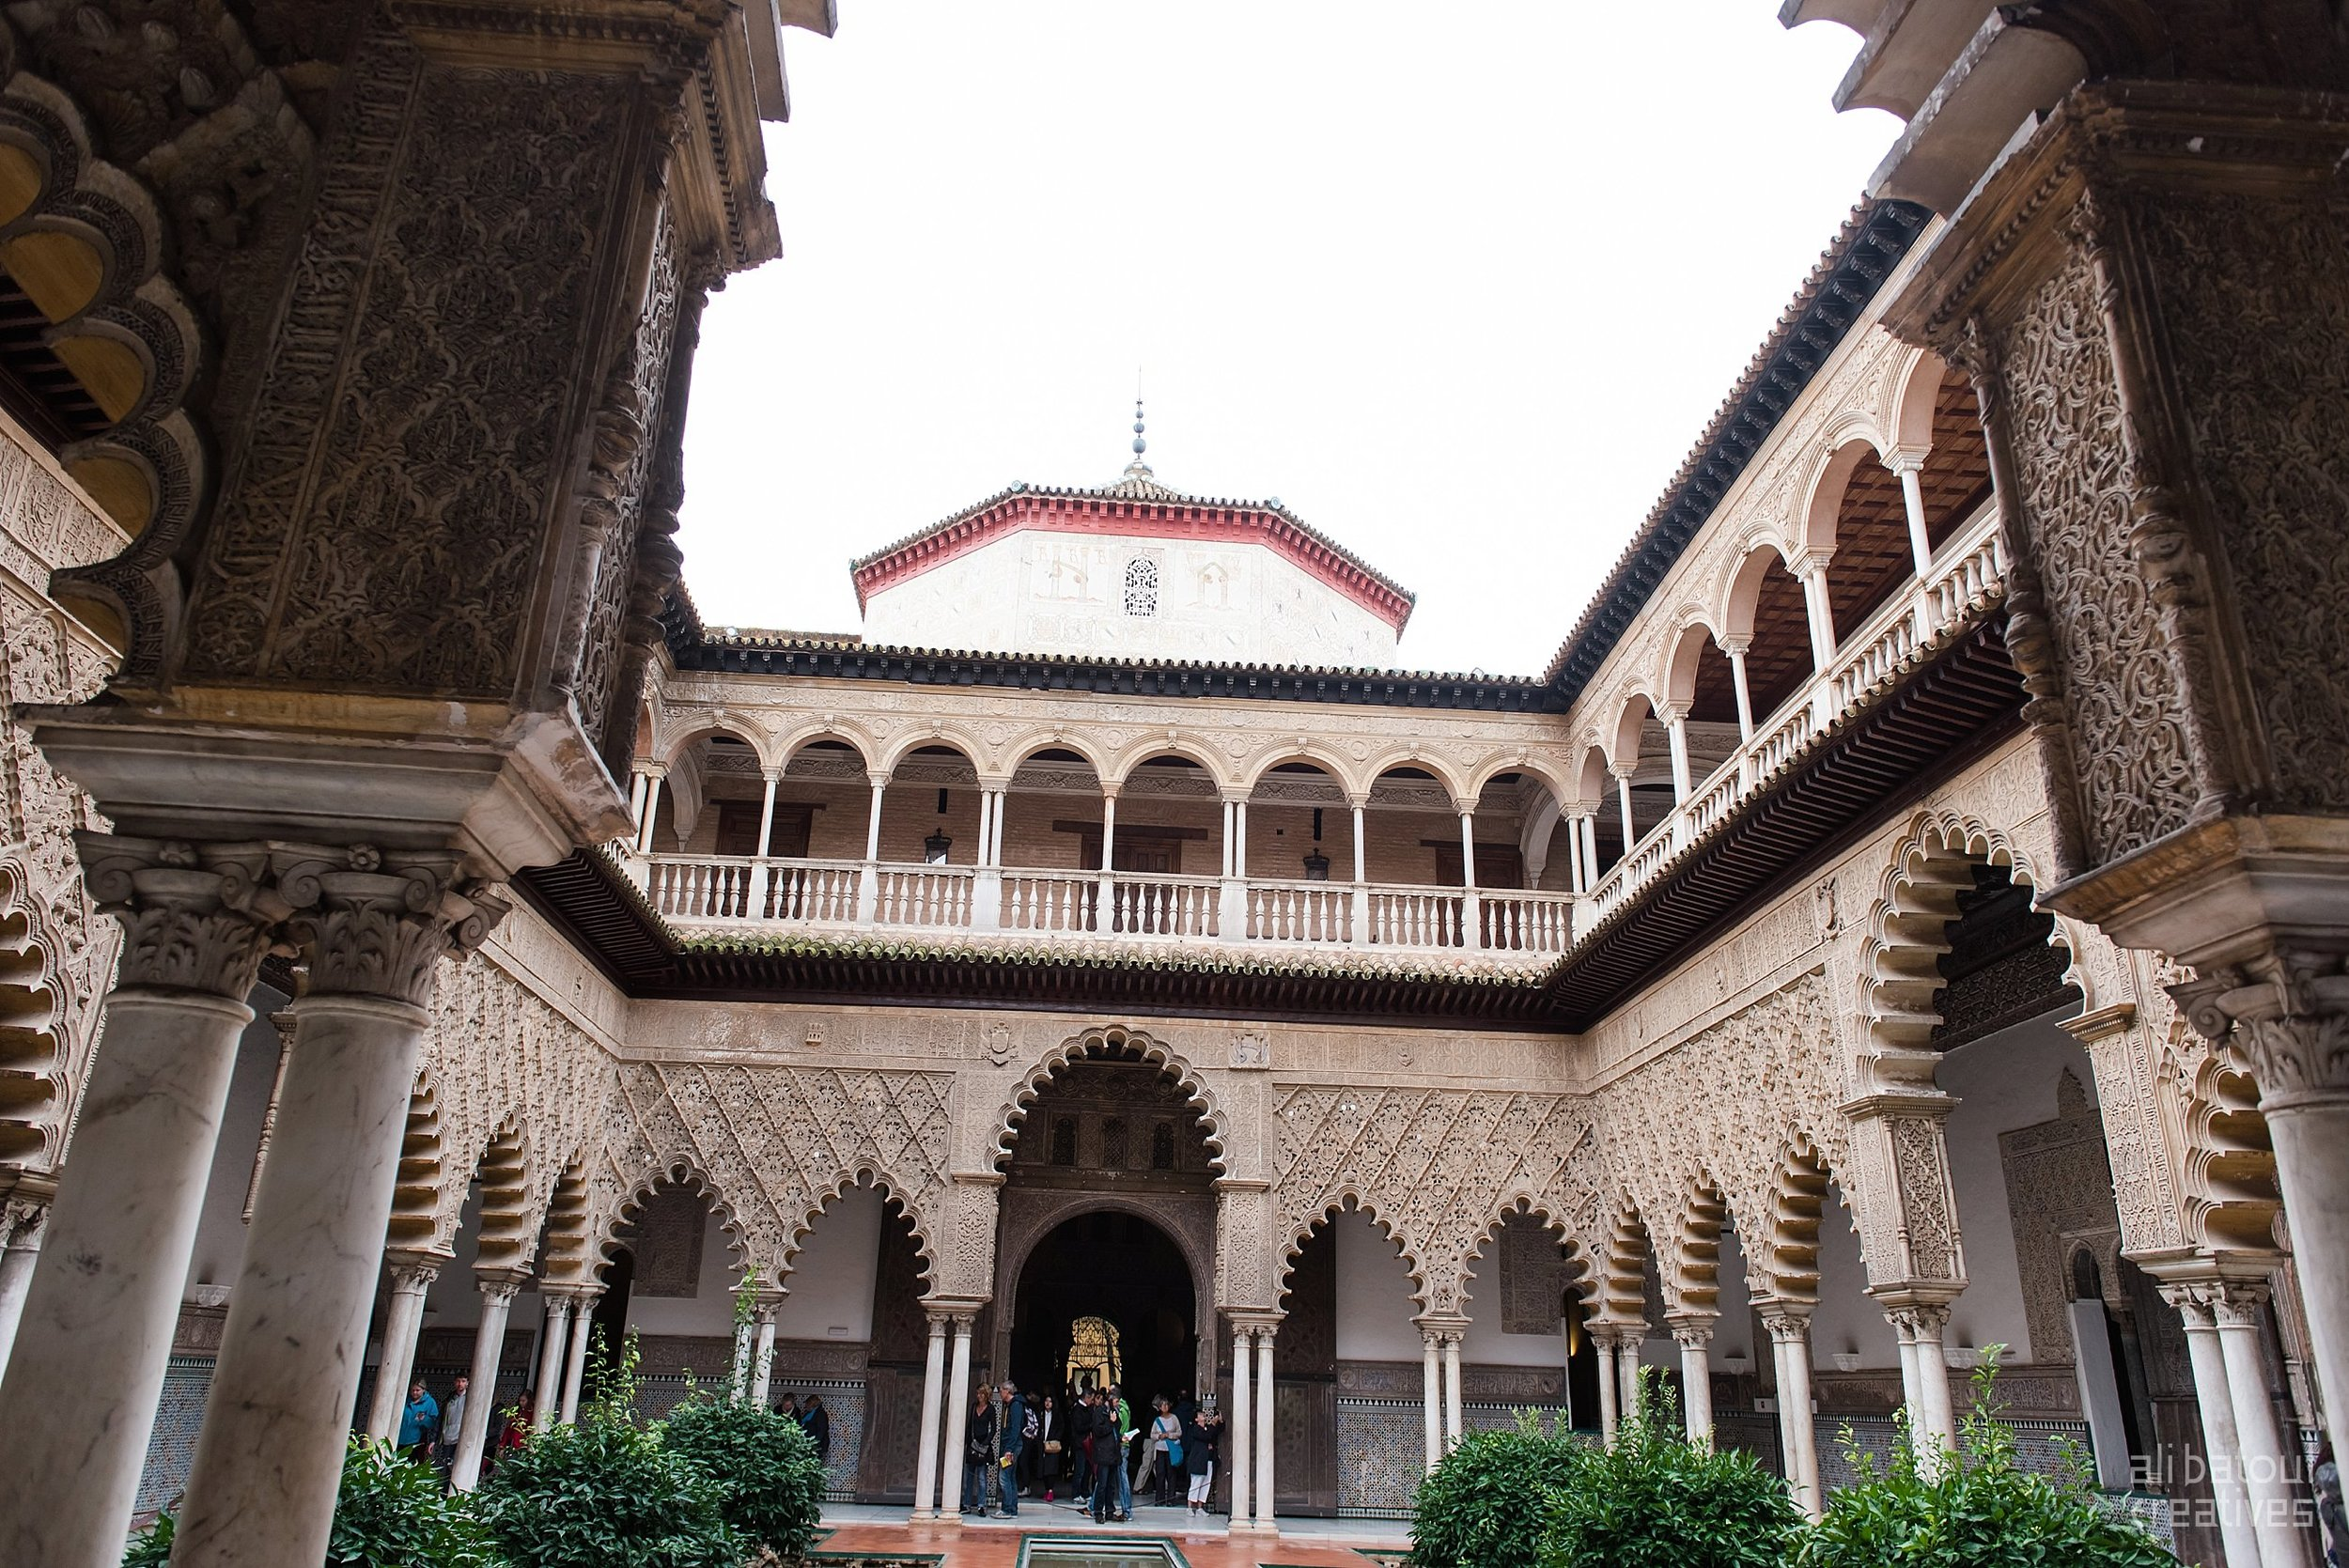 Day 2 of our Seville adventures began at the incredible Alcazar.